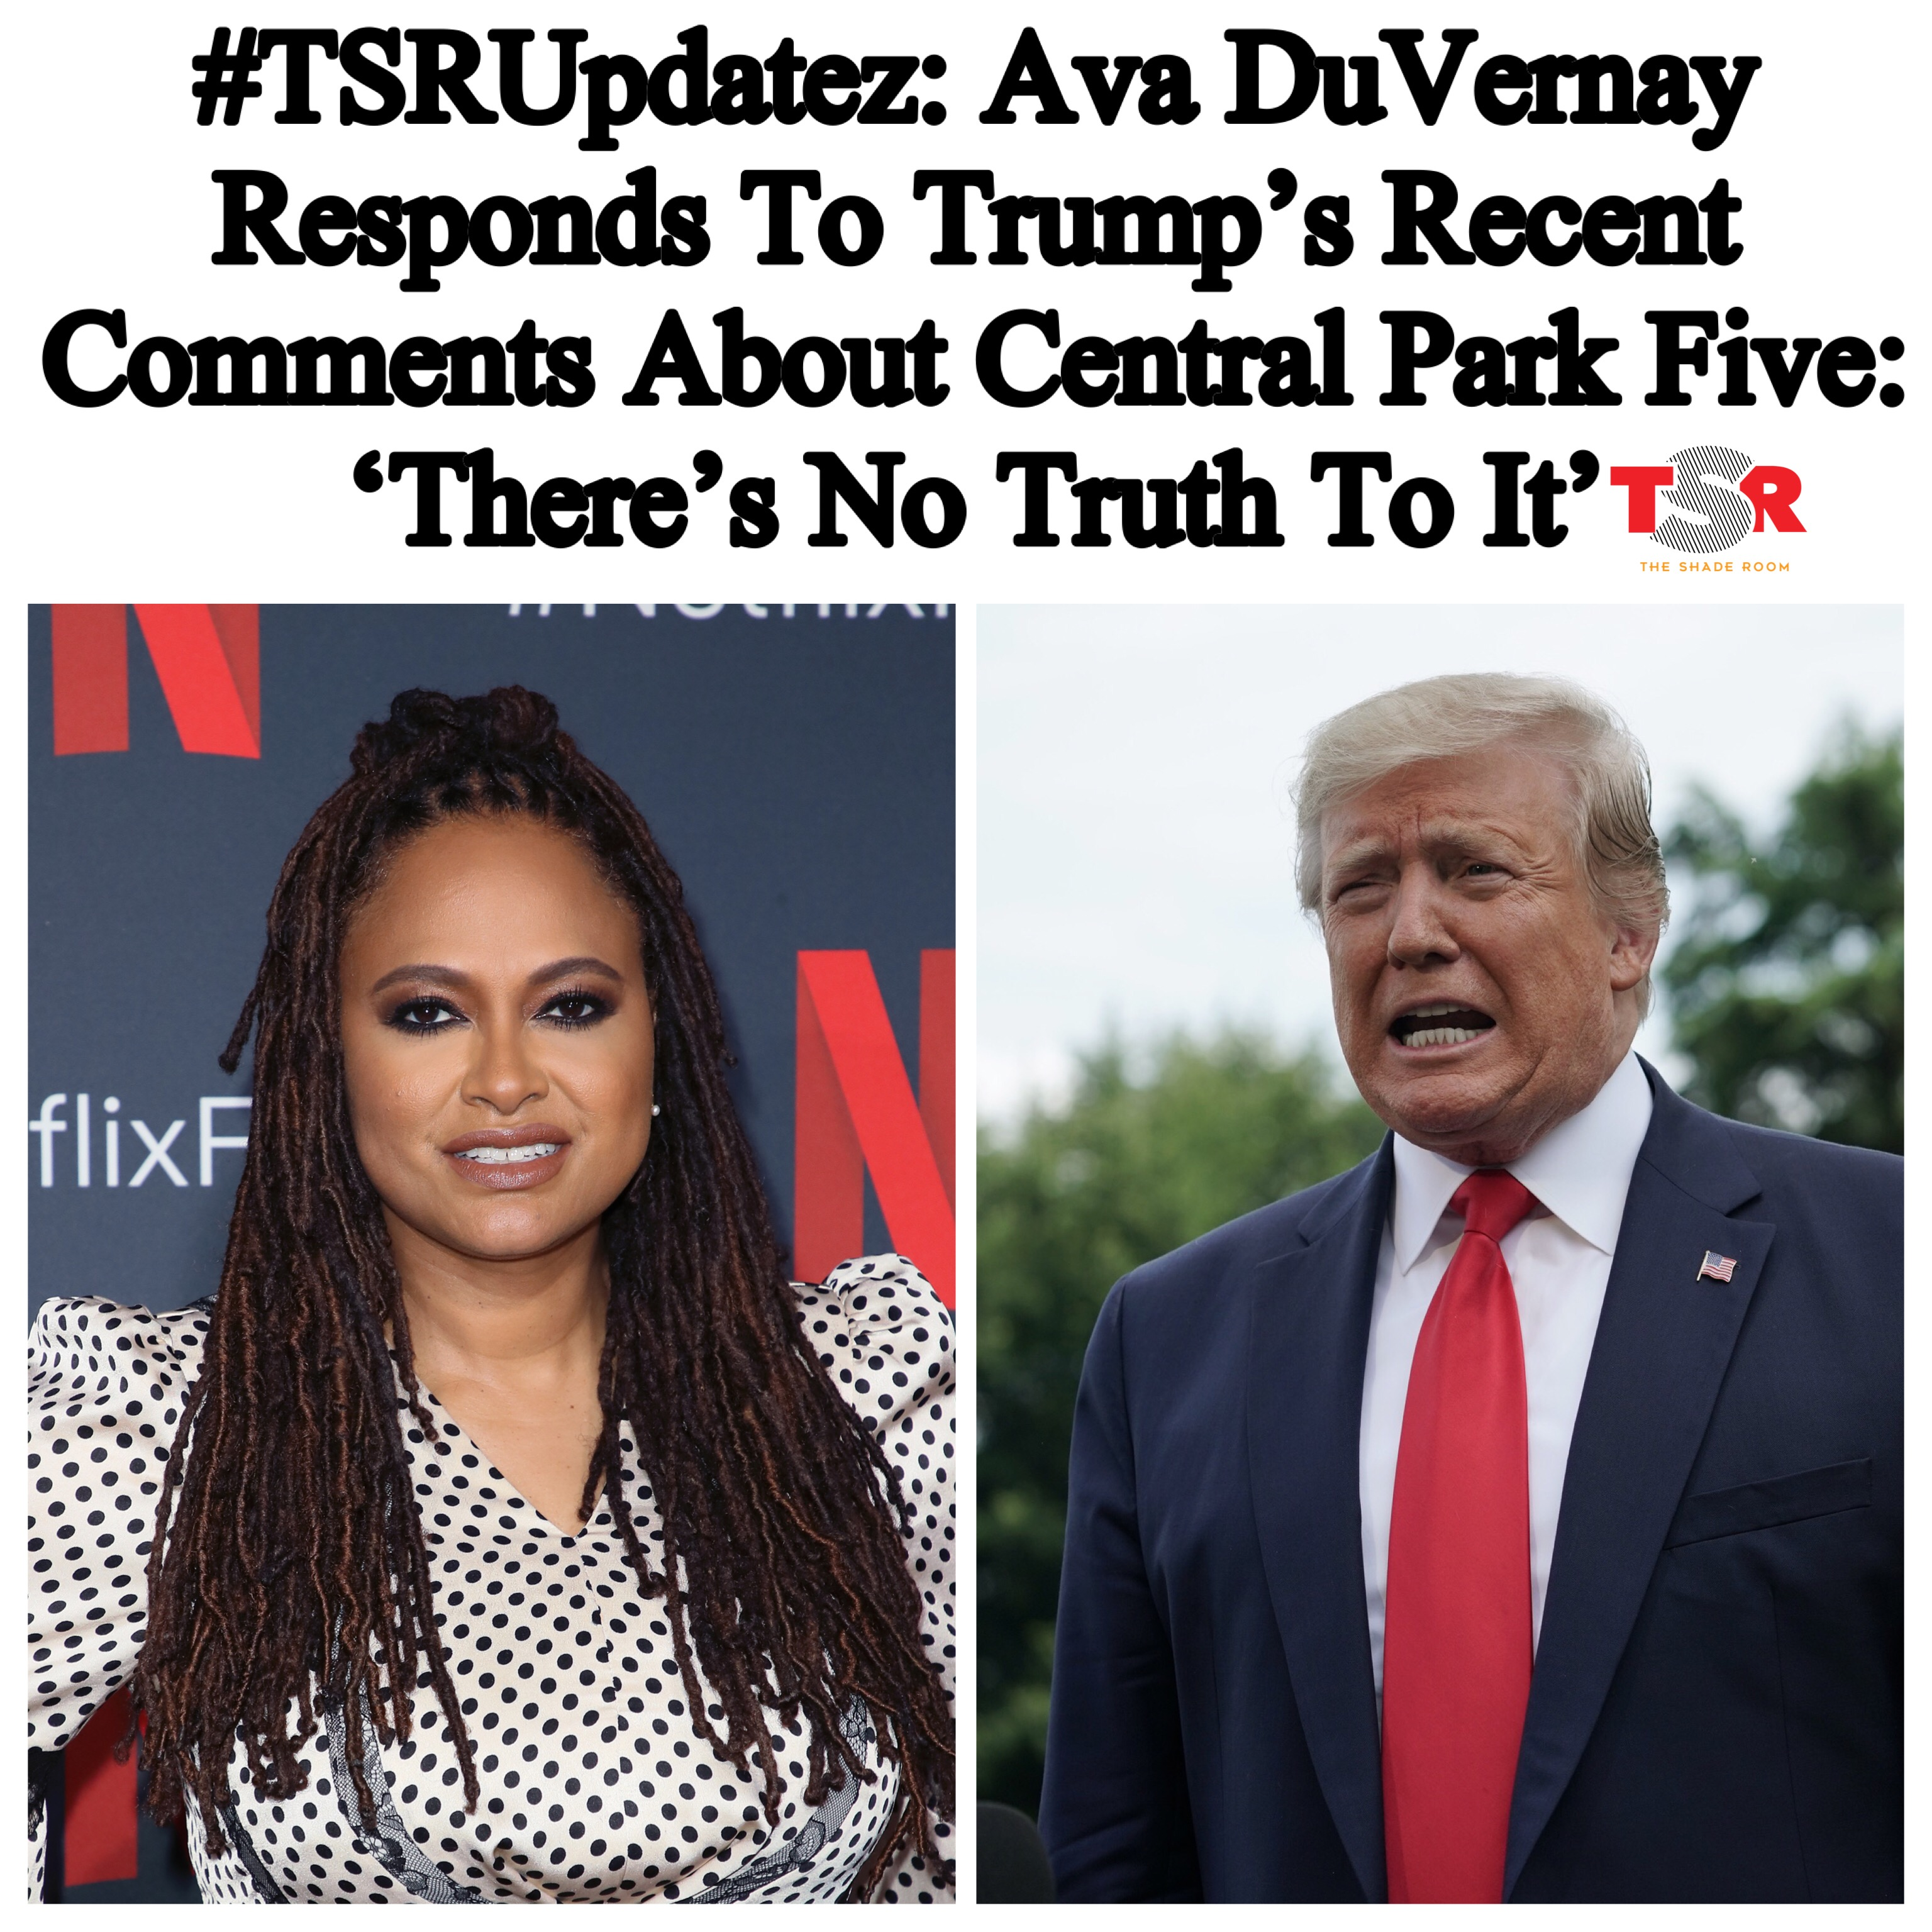 Ava DuVernay Responds To Trump's Recent Comments About Central Park Five: 'There's No Truth To It'